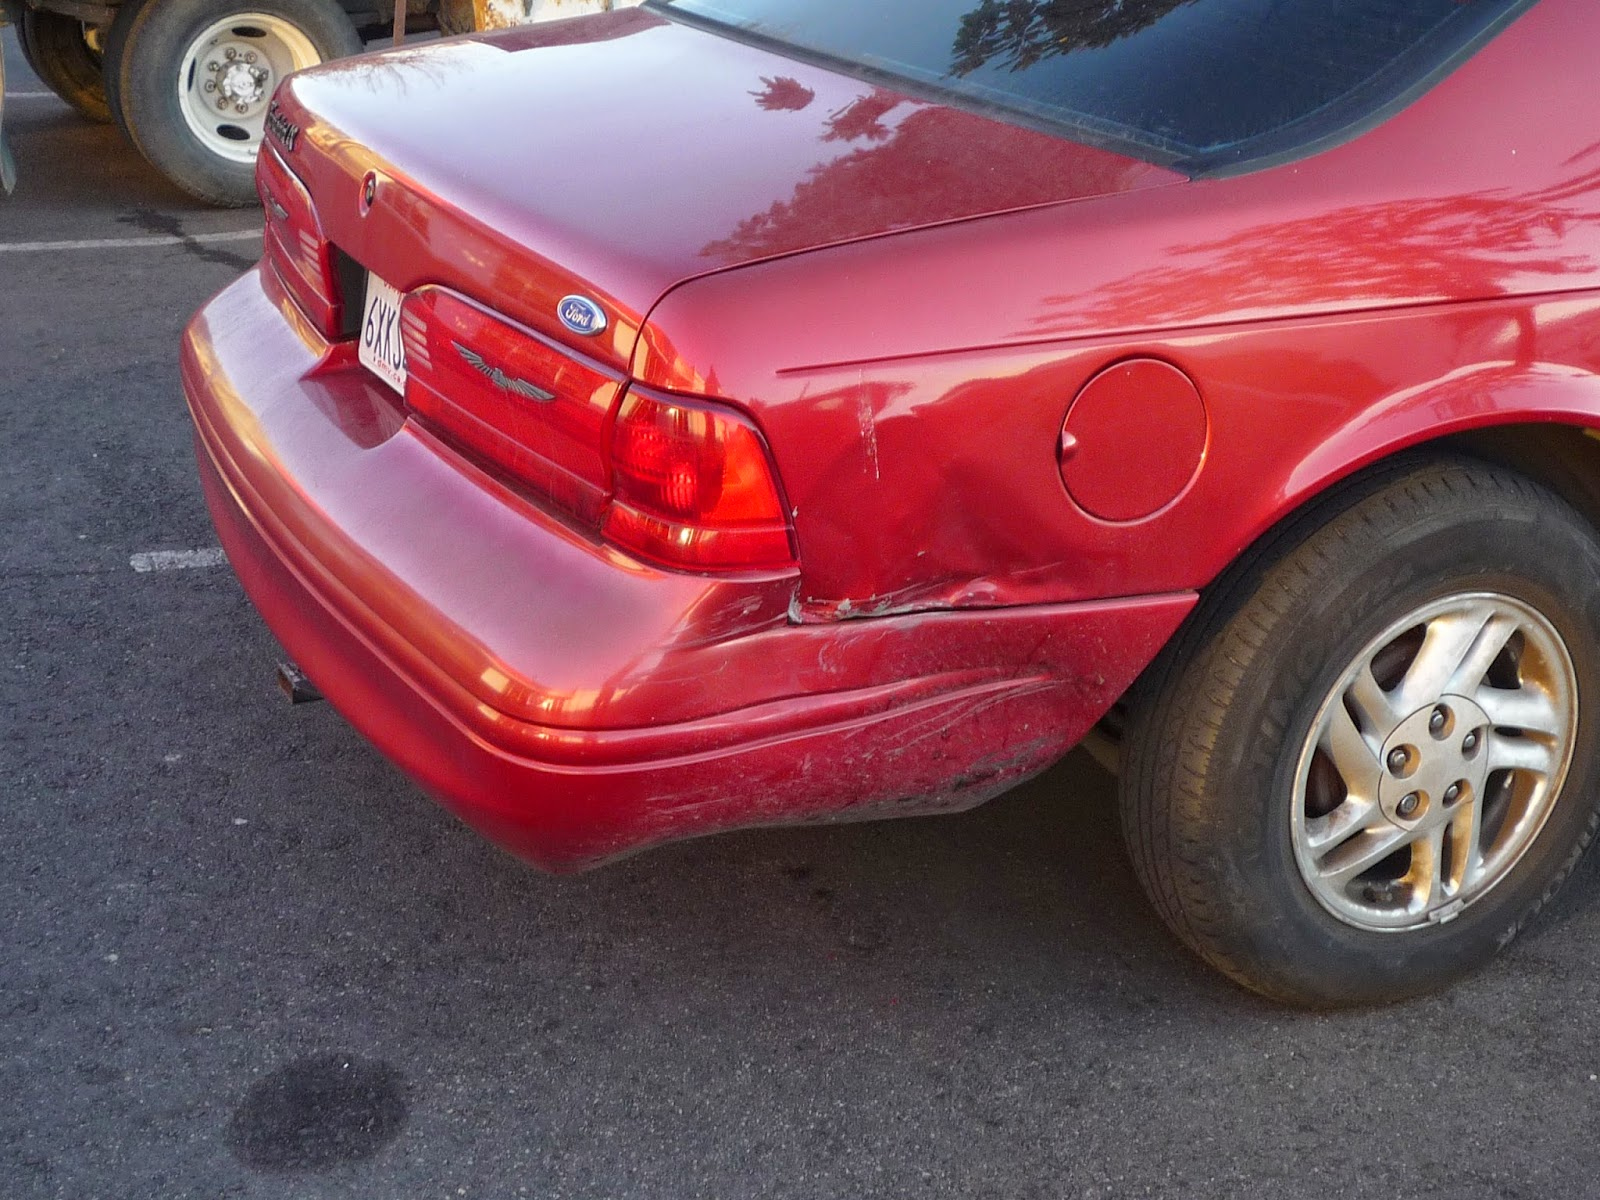 Large dent in bumper and quarter panel on 1996 Ford Thunderbird